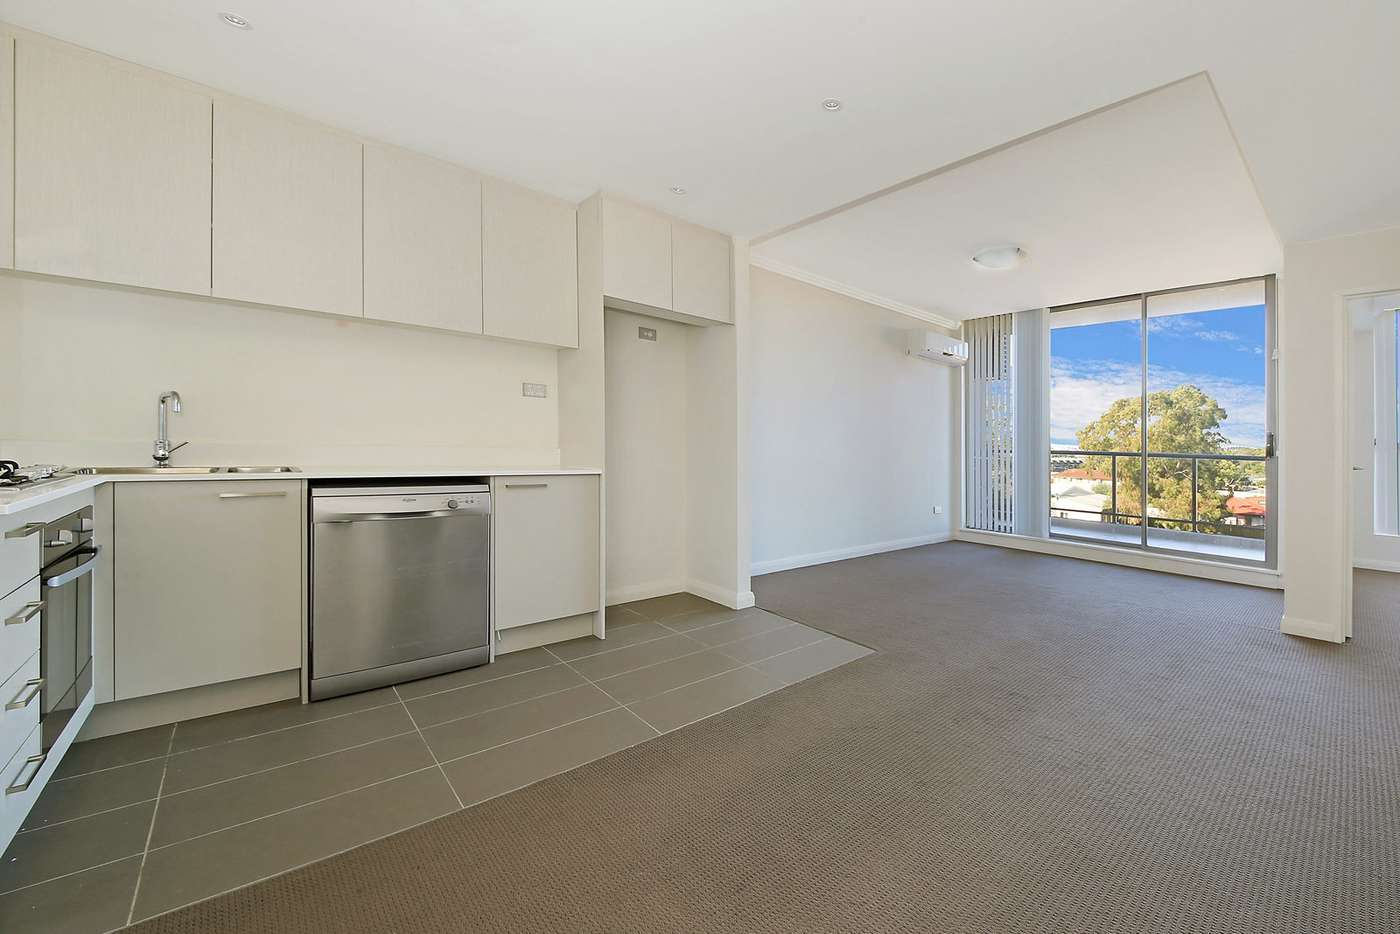 Main view of Homely apartment listing, 51/79-87 Beaconsfield Street, Silverwater, NSW 2128